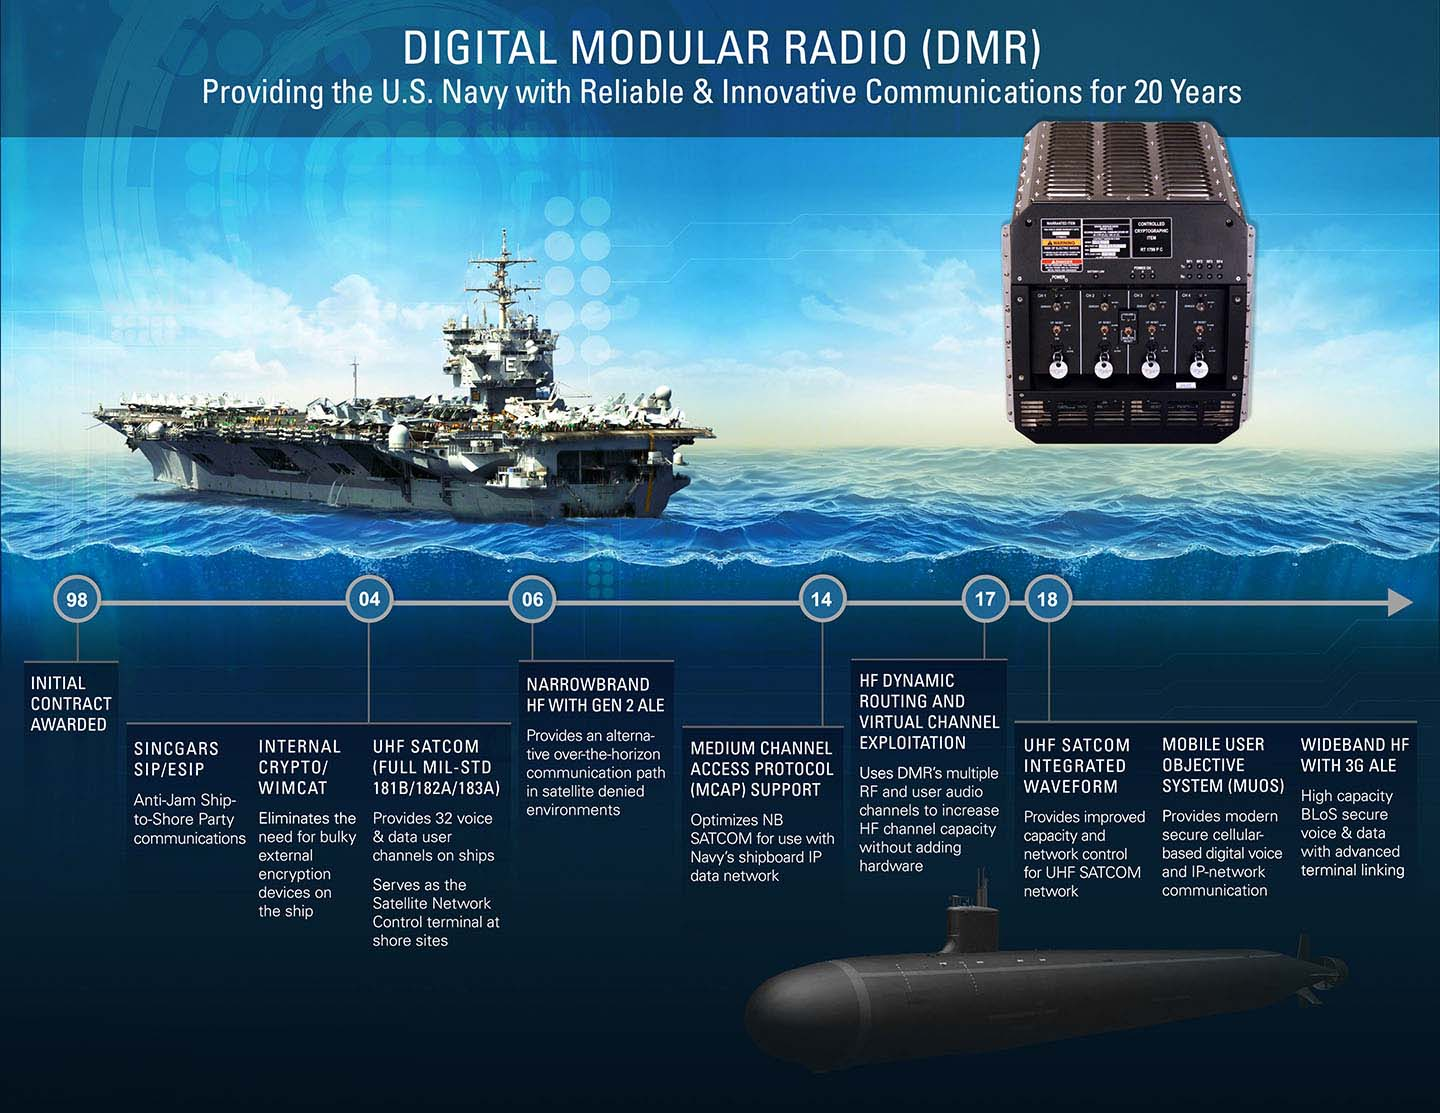 Digital Modular Radio DMR Timeline Graphic